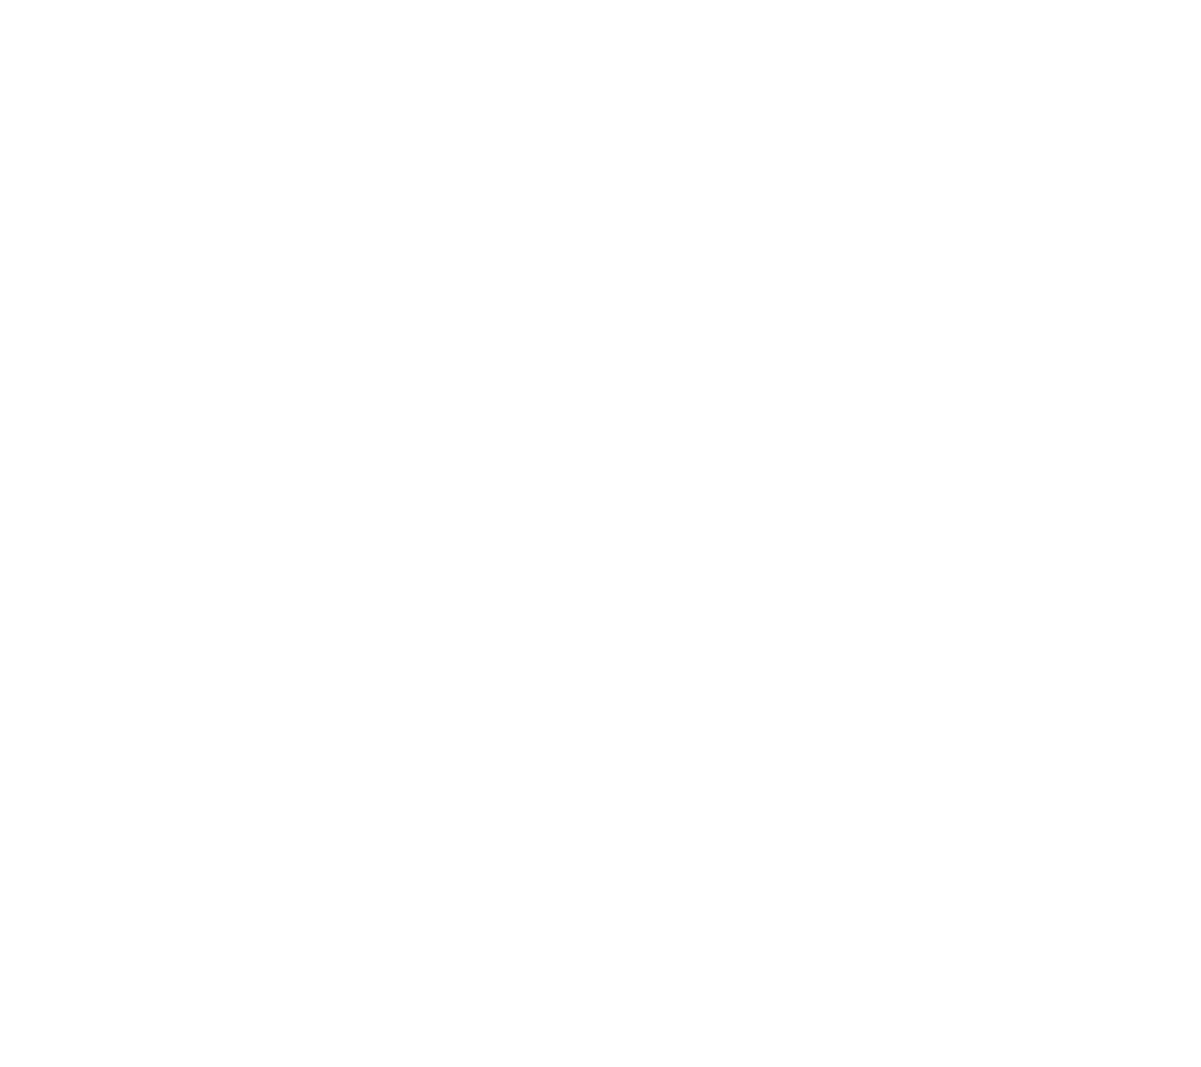 Awarded TripAdvisor's Certificate of Excellence 2012 - 2014